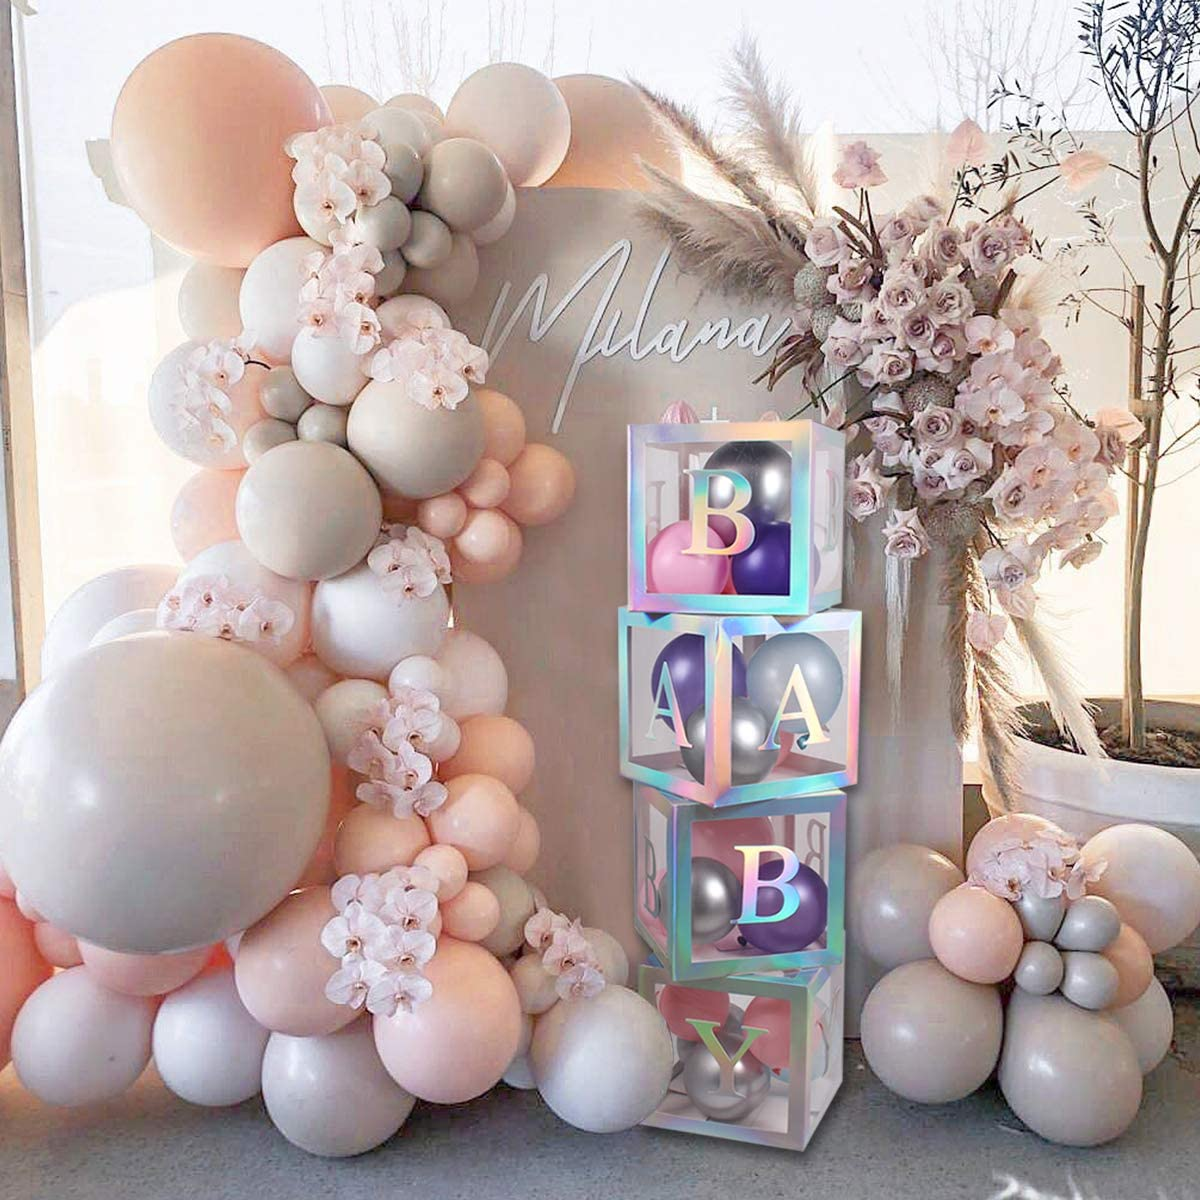 Amazon Com Baby Shower Boxes Party Decorations 4 Pcs Rainbow Sliver Transparent Balloons Boxes Decor With Rainbow Silver Letter Individual Baby Blocks Design For Boys Girls Baby Shower Bridal Birthday Party Kitchen